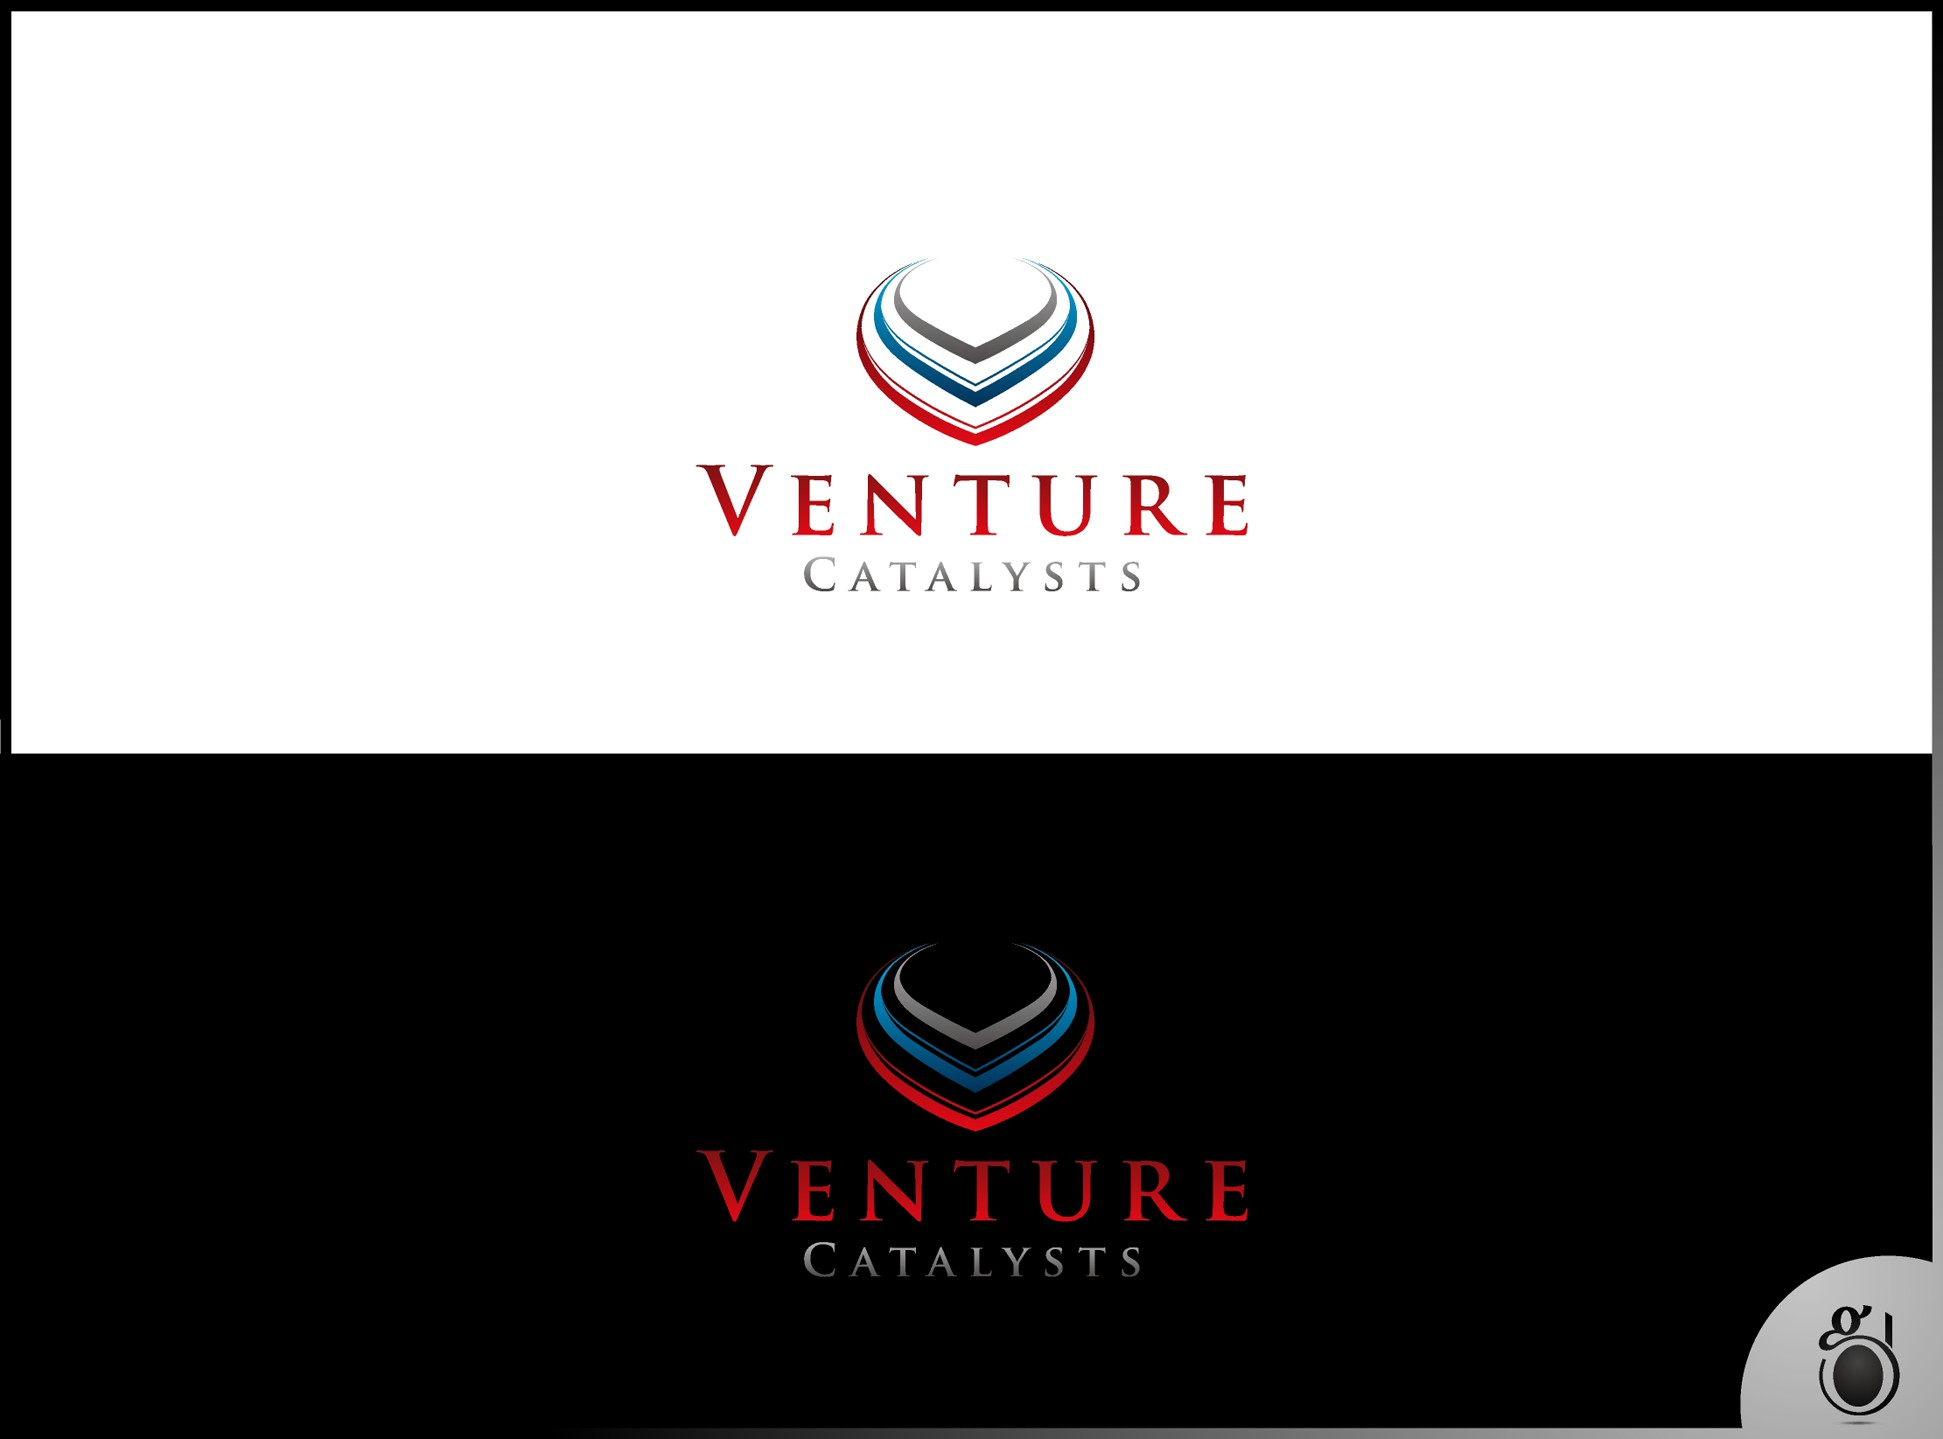 logo for Venture Catalysts